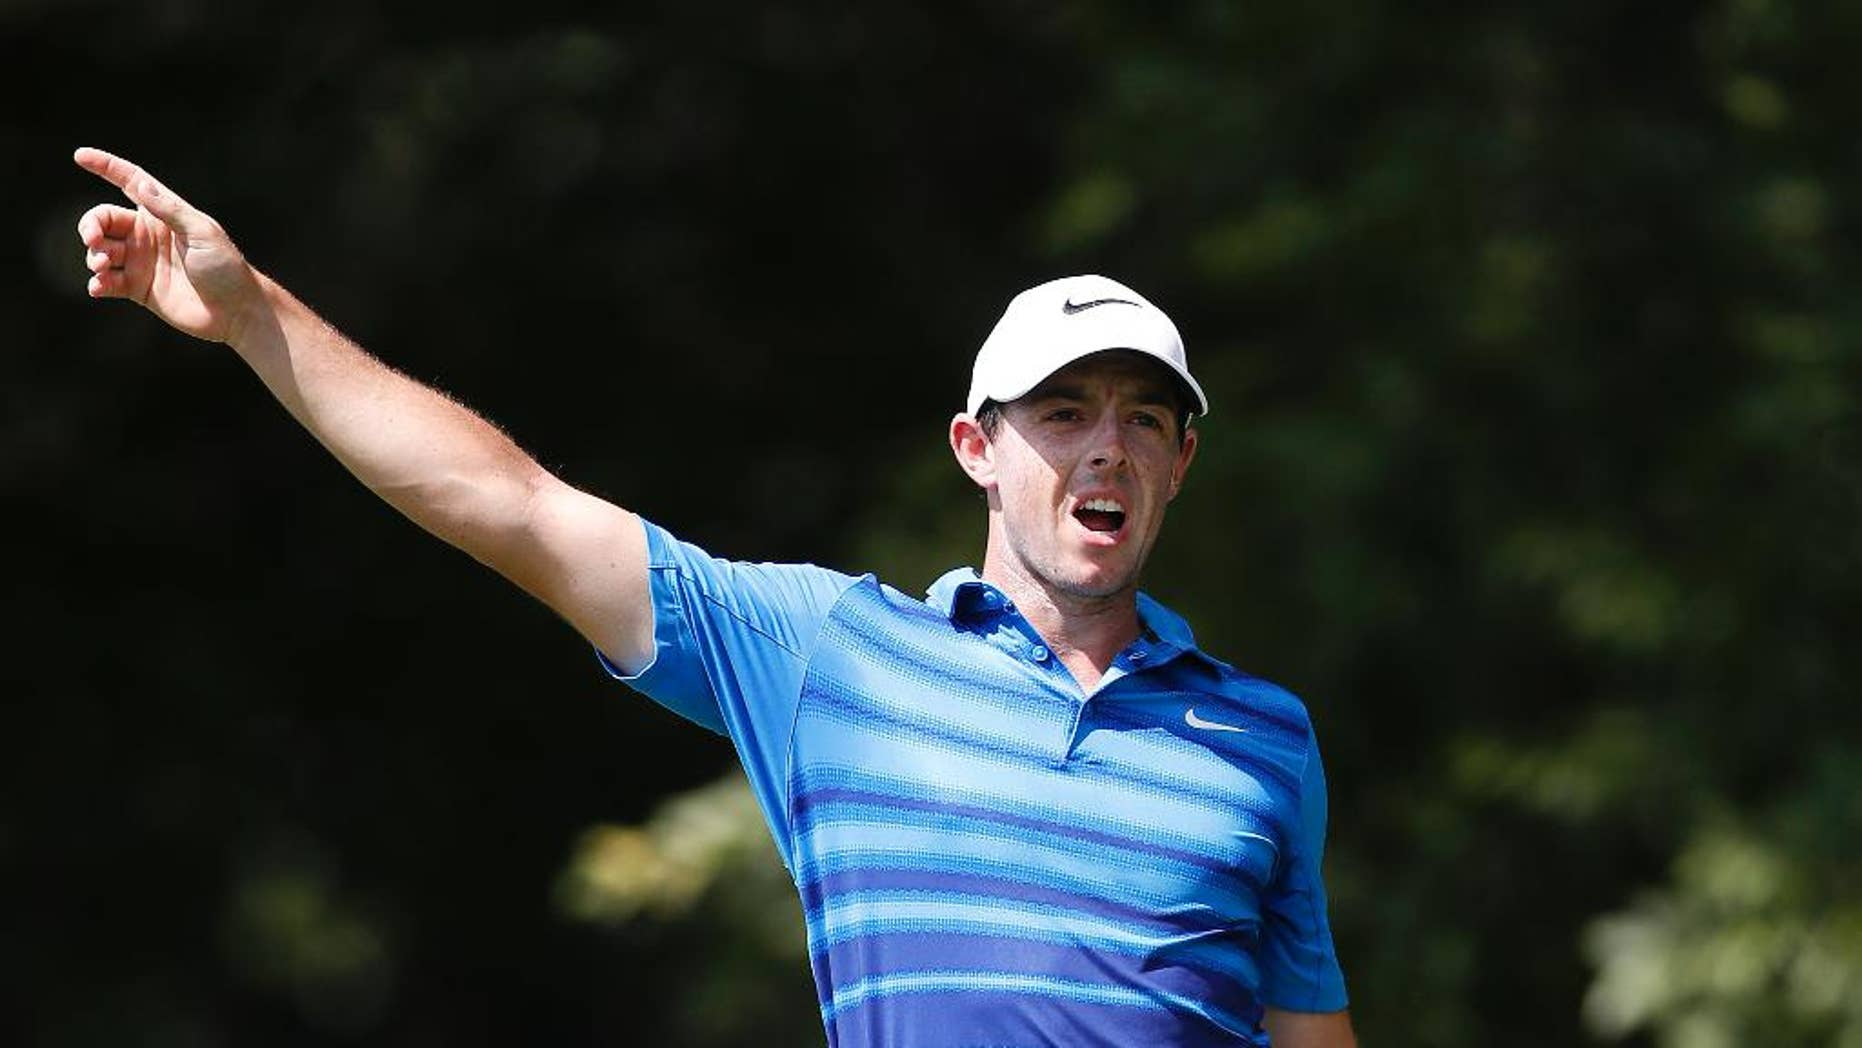 Rory McIlroy warns spectators of his errant shot on the second tee during the second round of play at the Tour Championship golf tournament at East Lake Golf Club Friday, Sept. 23, 2016, in Atlanta. (AP Photo/John Bazemore)